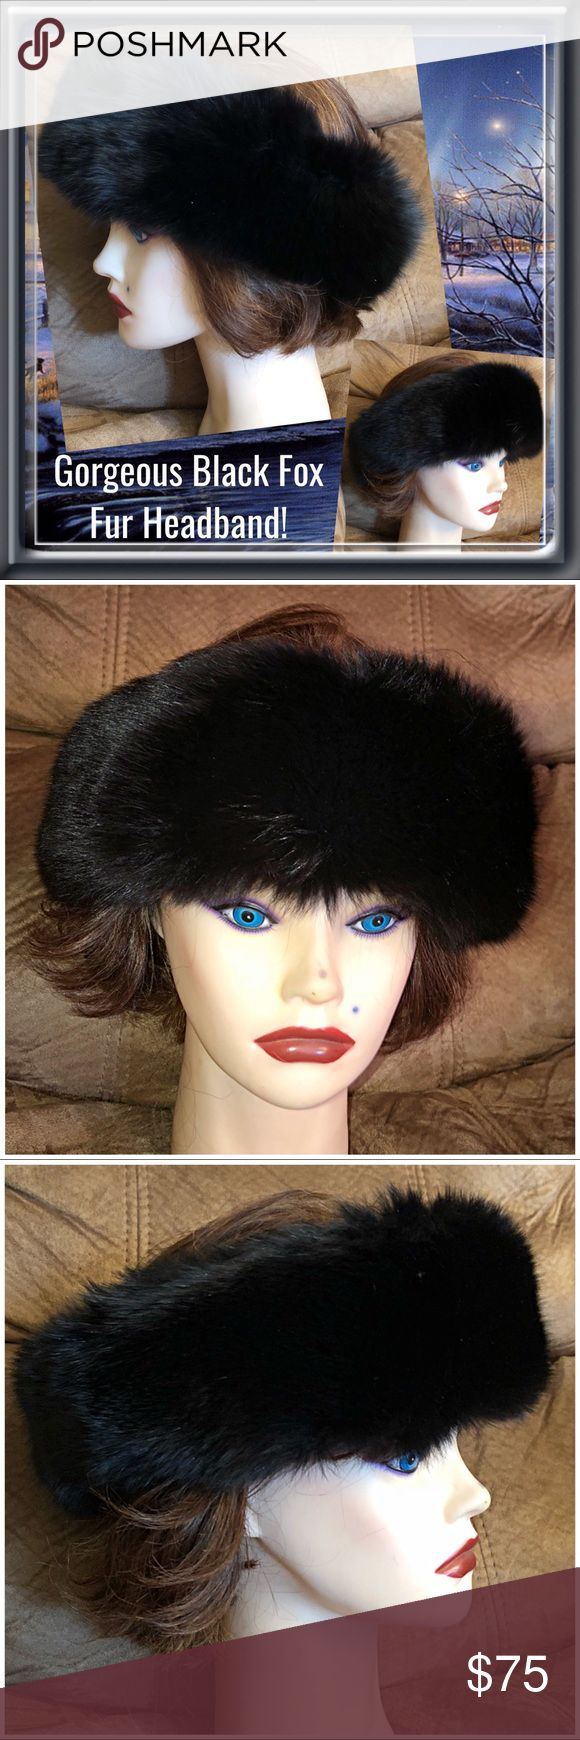 "Vintage Fine Black Fox Genuine Fur Headband! Gorgeous Vintage Black Fox Fur Headband! Fabulous headband made of natural & genuine Fox fur. The fur has beautiful rich, dark brown highlights & black tips. The band measures 3"" wide with an adjustable Velcro closure & back lined with black velvet! Can also be used as a neck scarf as well! VG condition. Offers welcome! Vintage Accessories Hair Accessories"